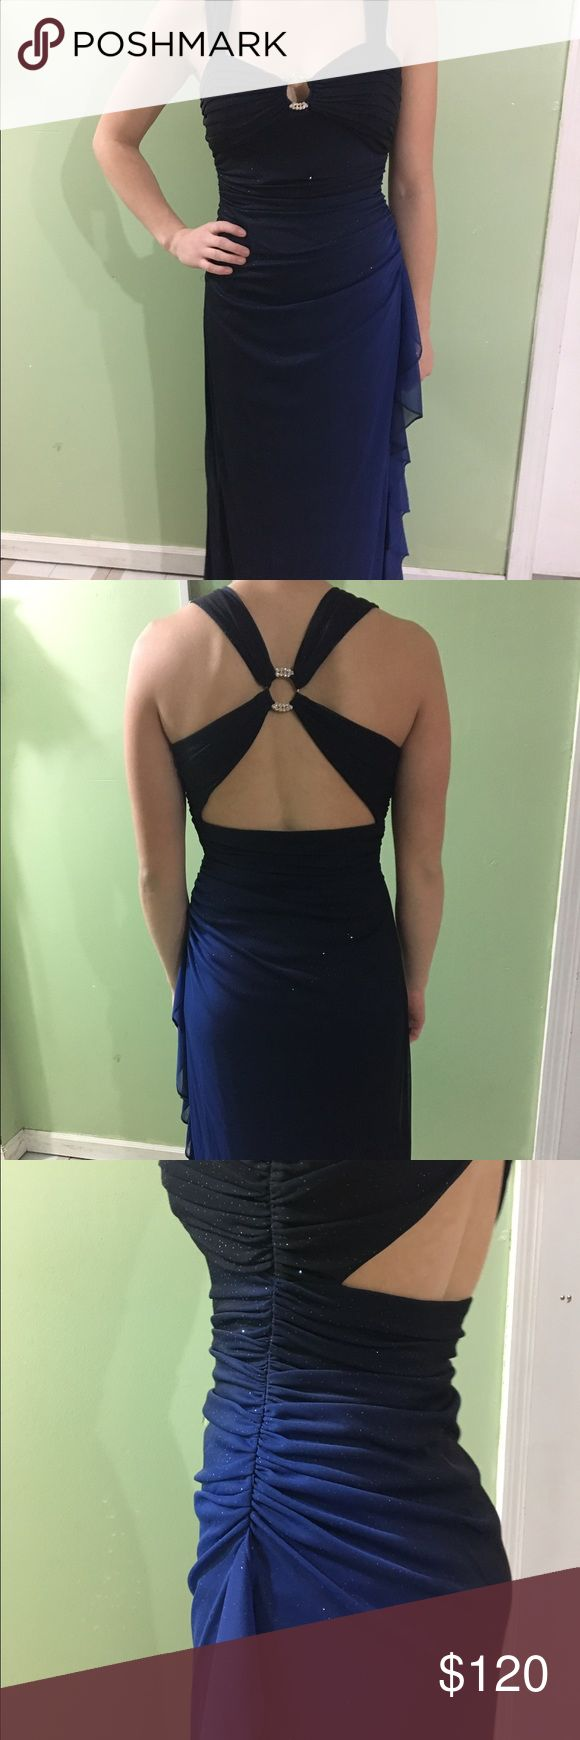 Prom dress Full length, blue, sparkly, worn once perfect condition, size 6 petite Dresses Prom